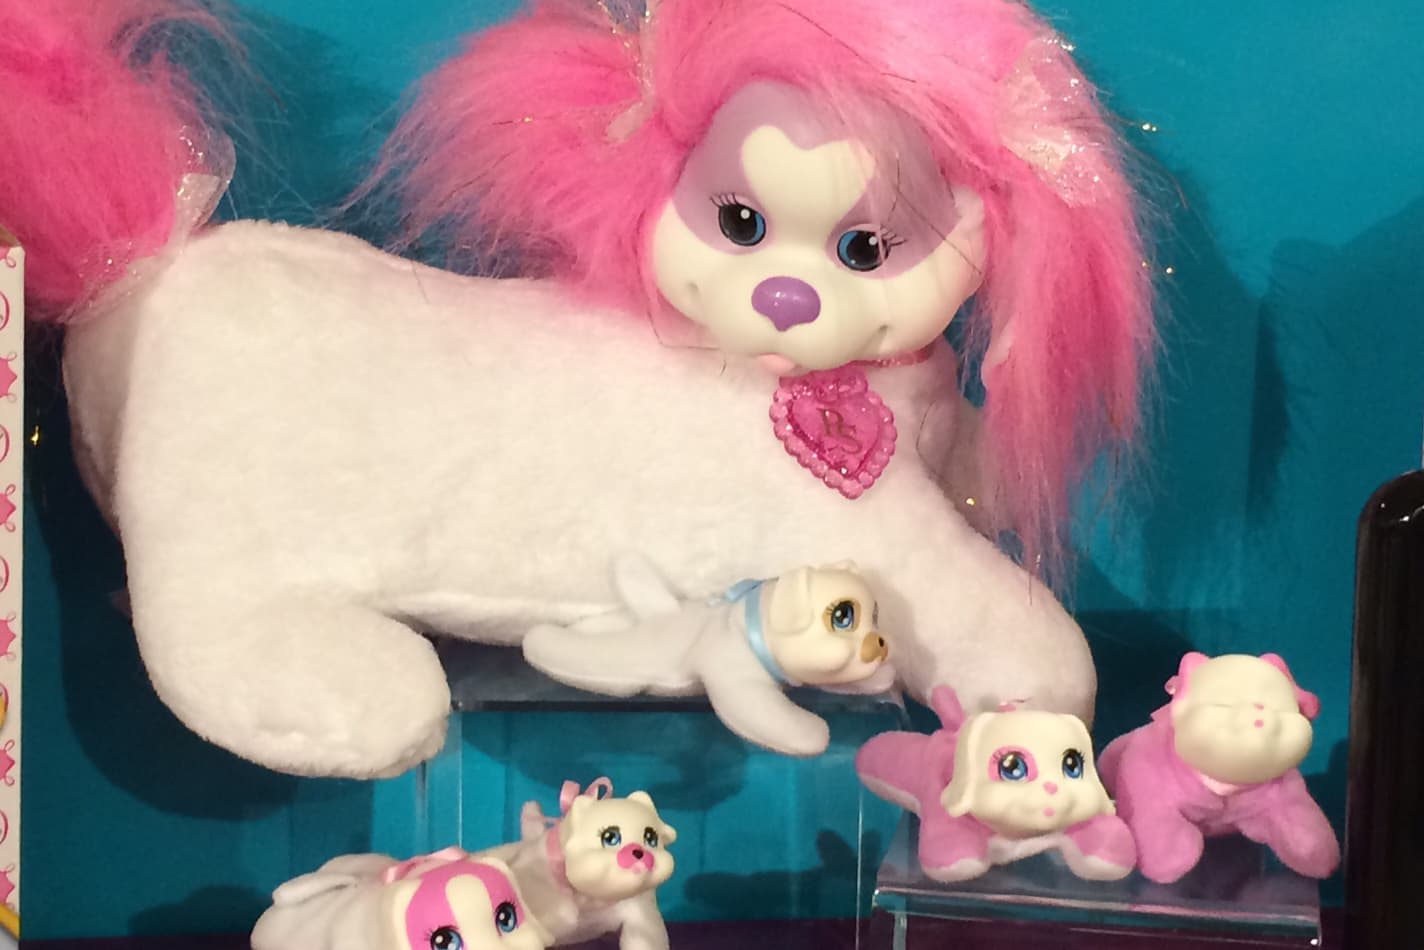 Pound puppies care bears are hot holiday toys